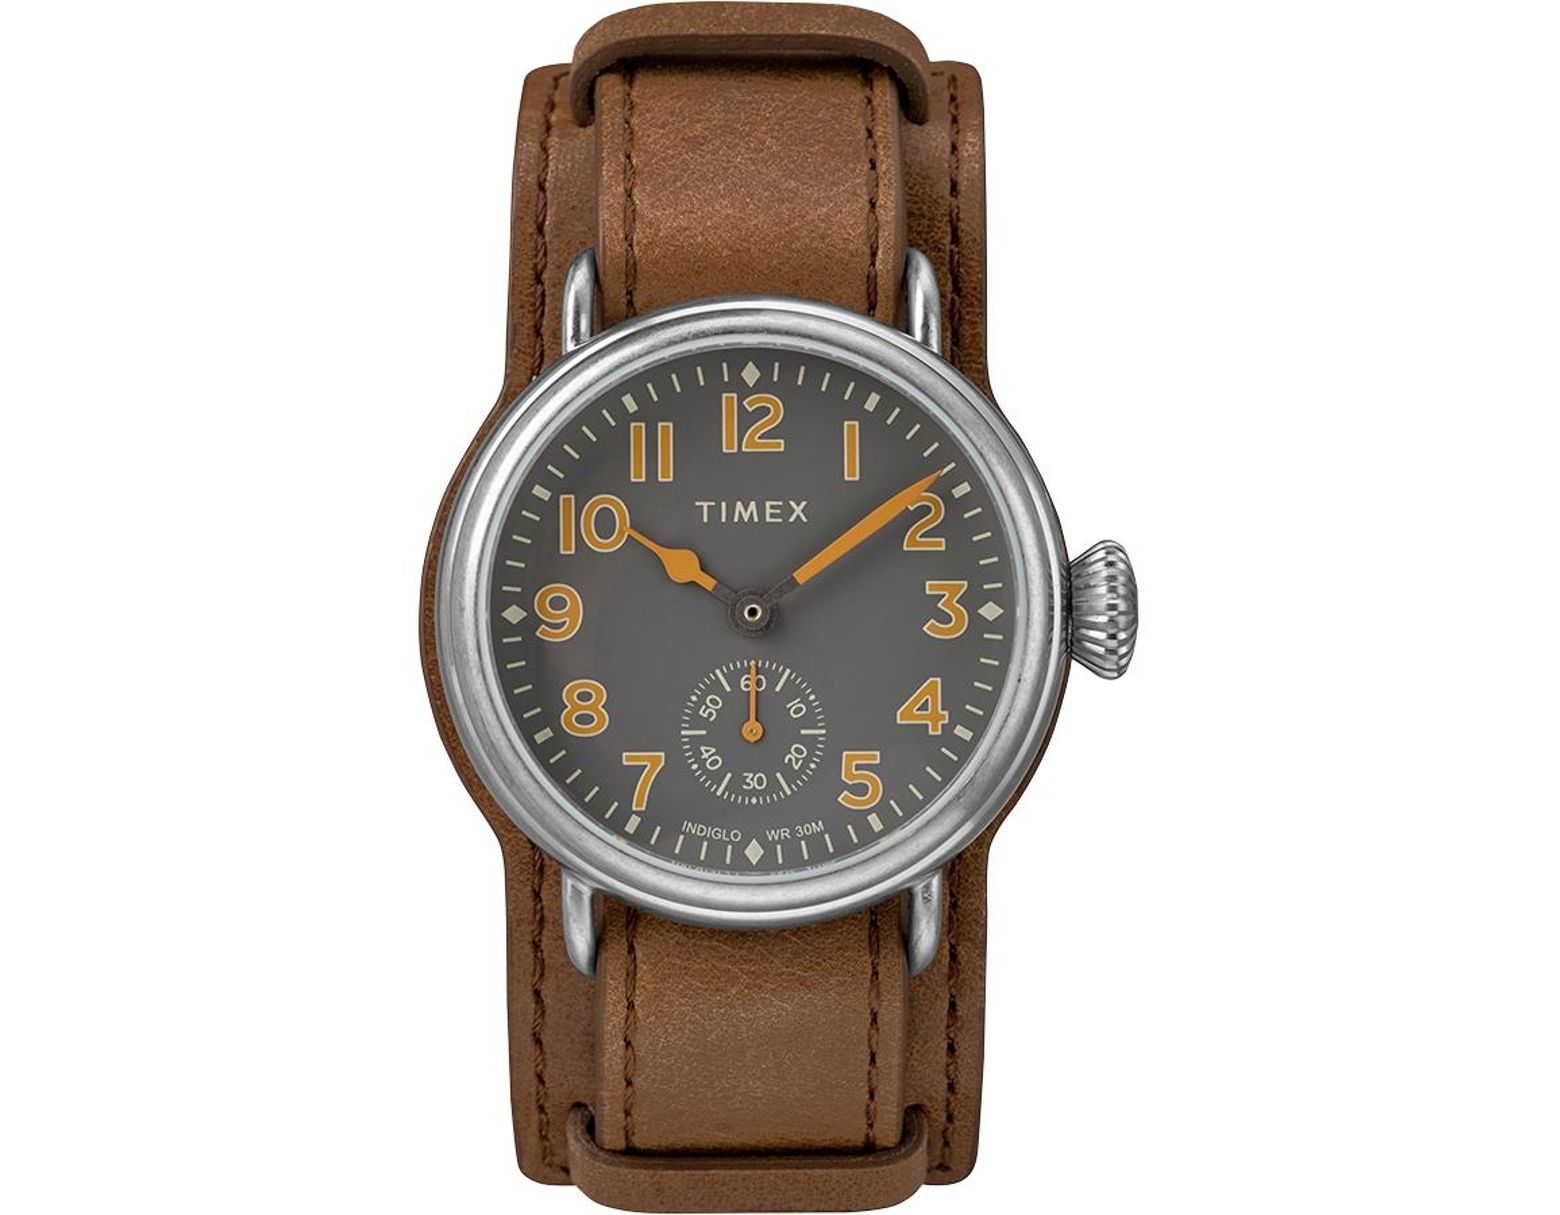 8b4842fb1 Timex Watch Welton 38mm Leather Strap Stainless Steel/brown/gray in Brown  for Men - Save 20% - Lyst